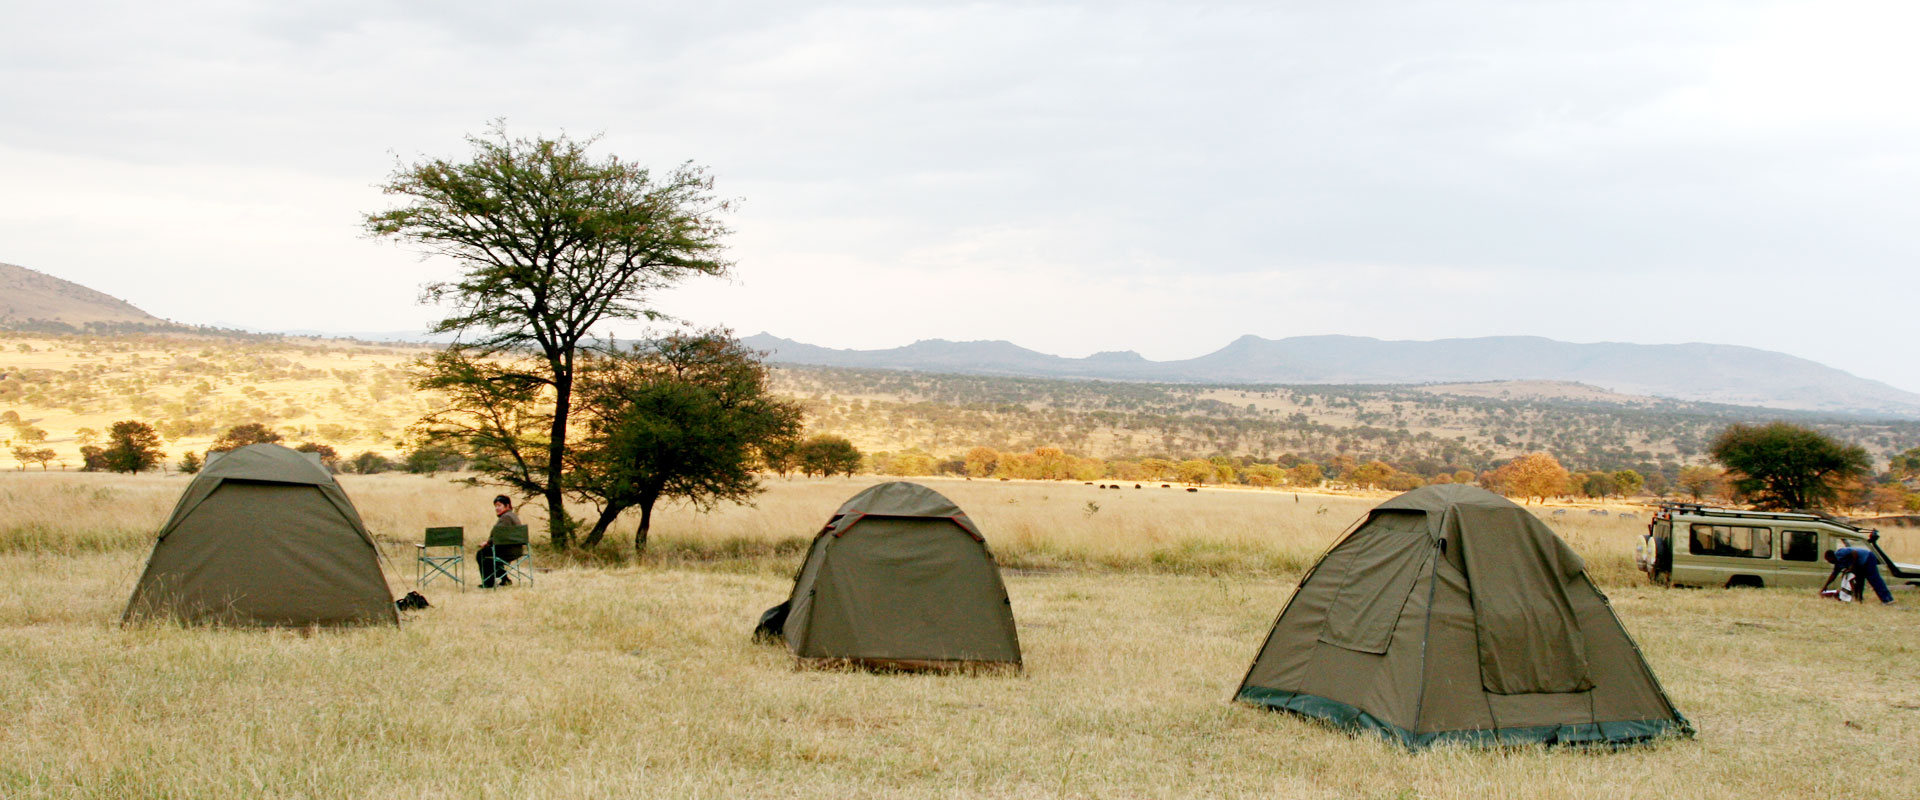 Camping in Masai Mara National Reserve